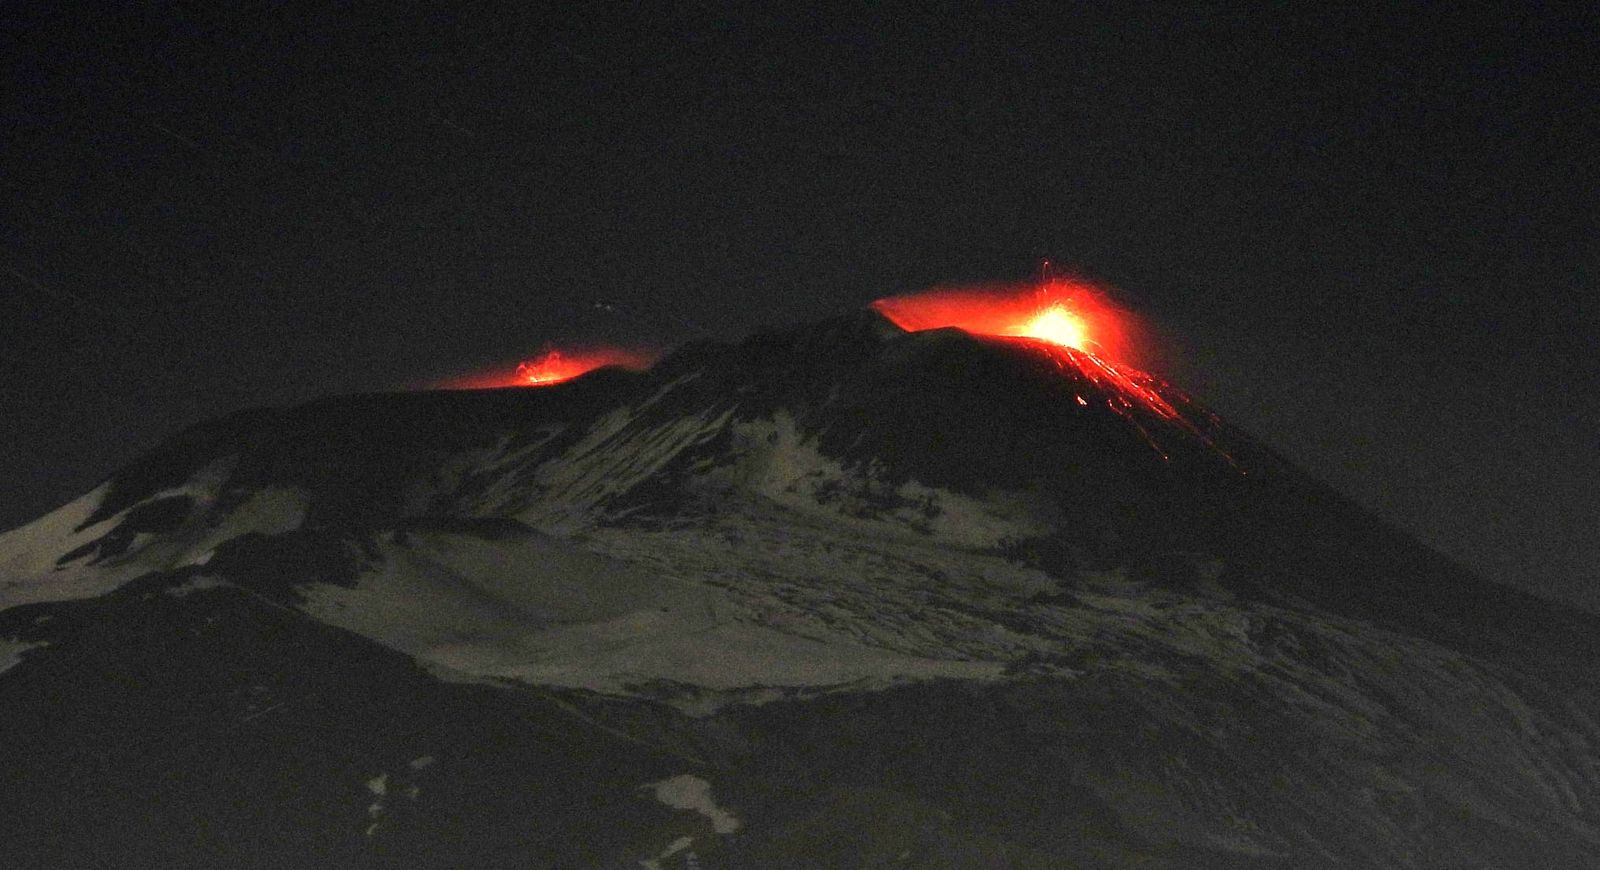 Etna - Strombolian activity 06.12.2019 / 19h34 at NSEC (right) and weaker explosions at Voragine (left) - photo INGVvulcani